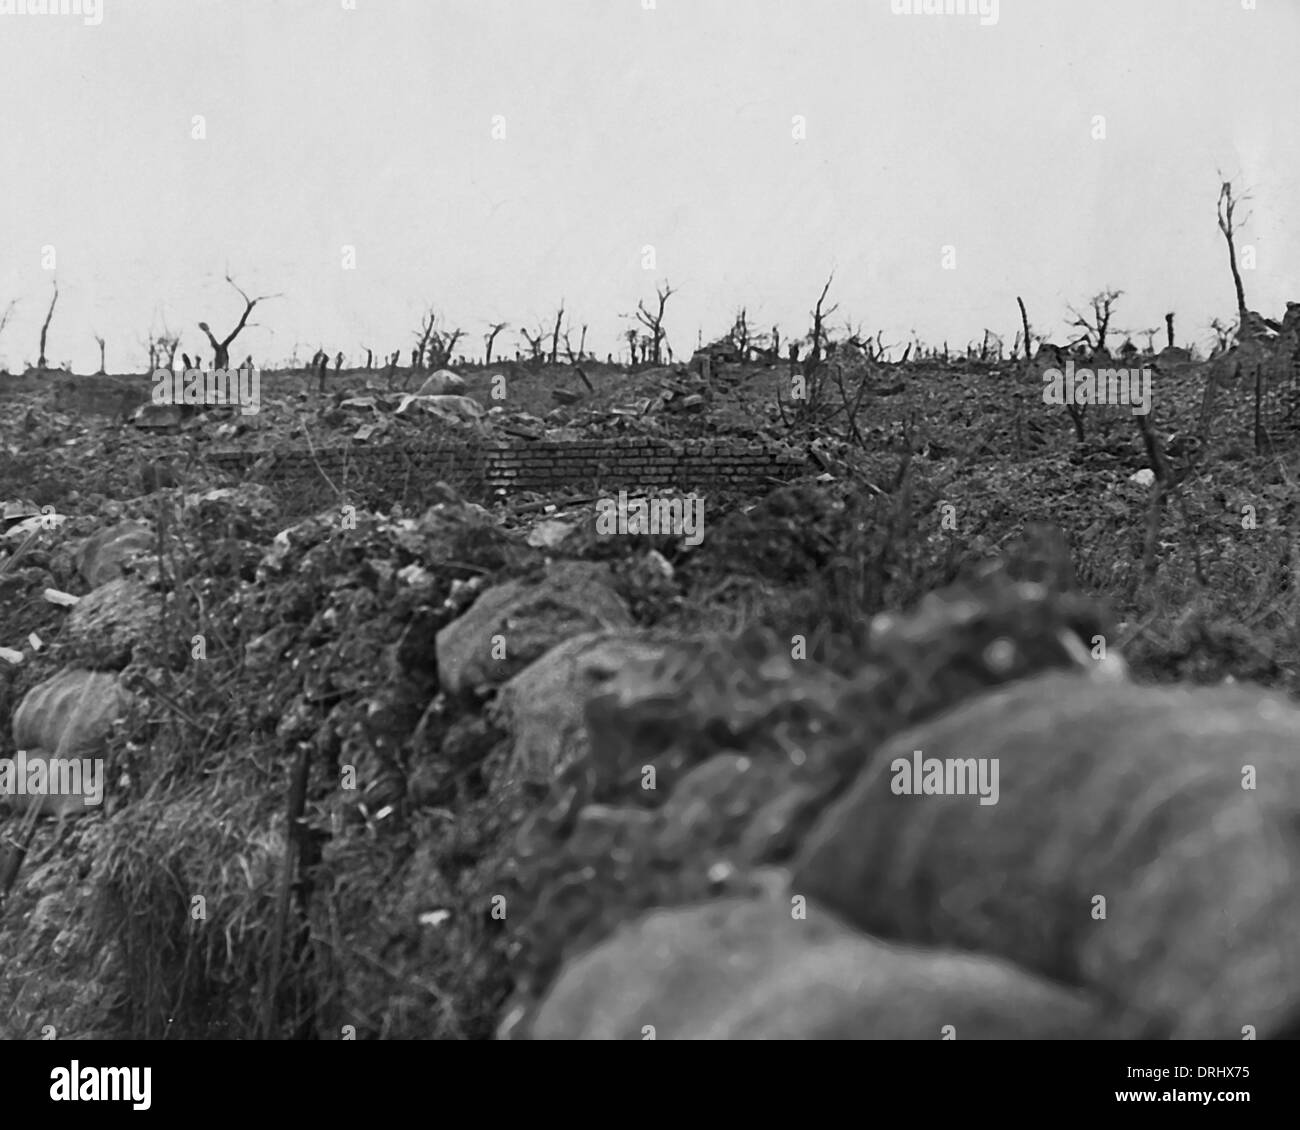 Fire Trench Stock Photos Images Alamy Diagram Ww1 British Near Ovillers Western Front Image